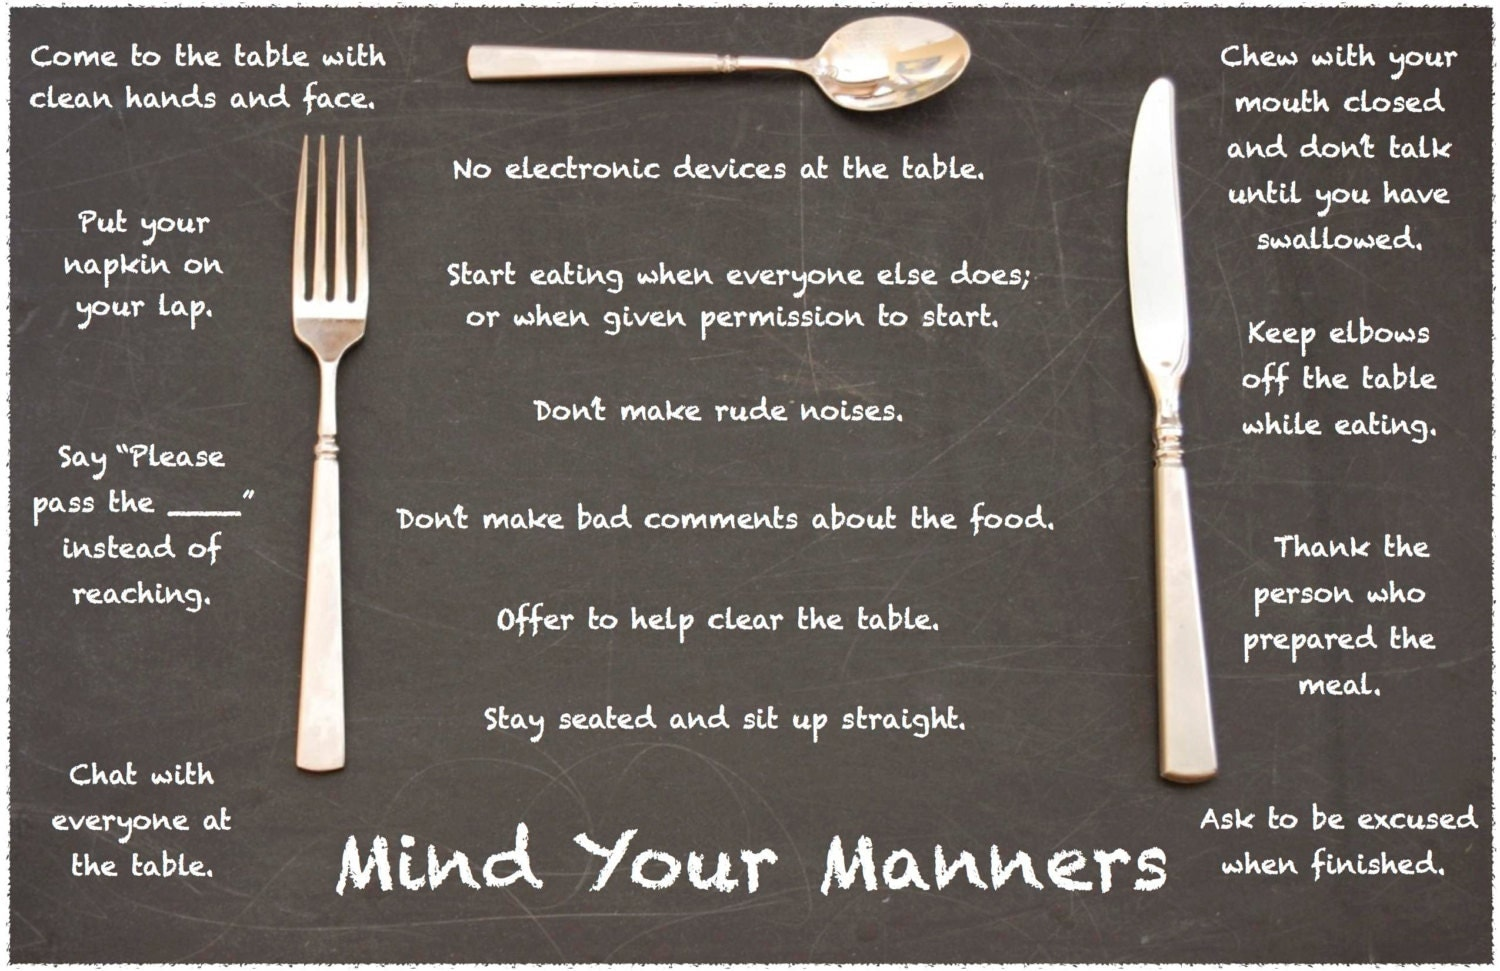 Mind your manners table manners fork knife placemat for Table etiquette